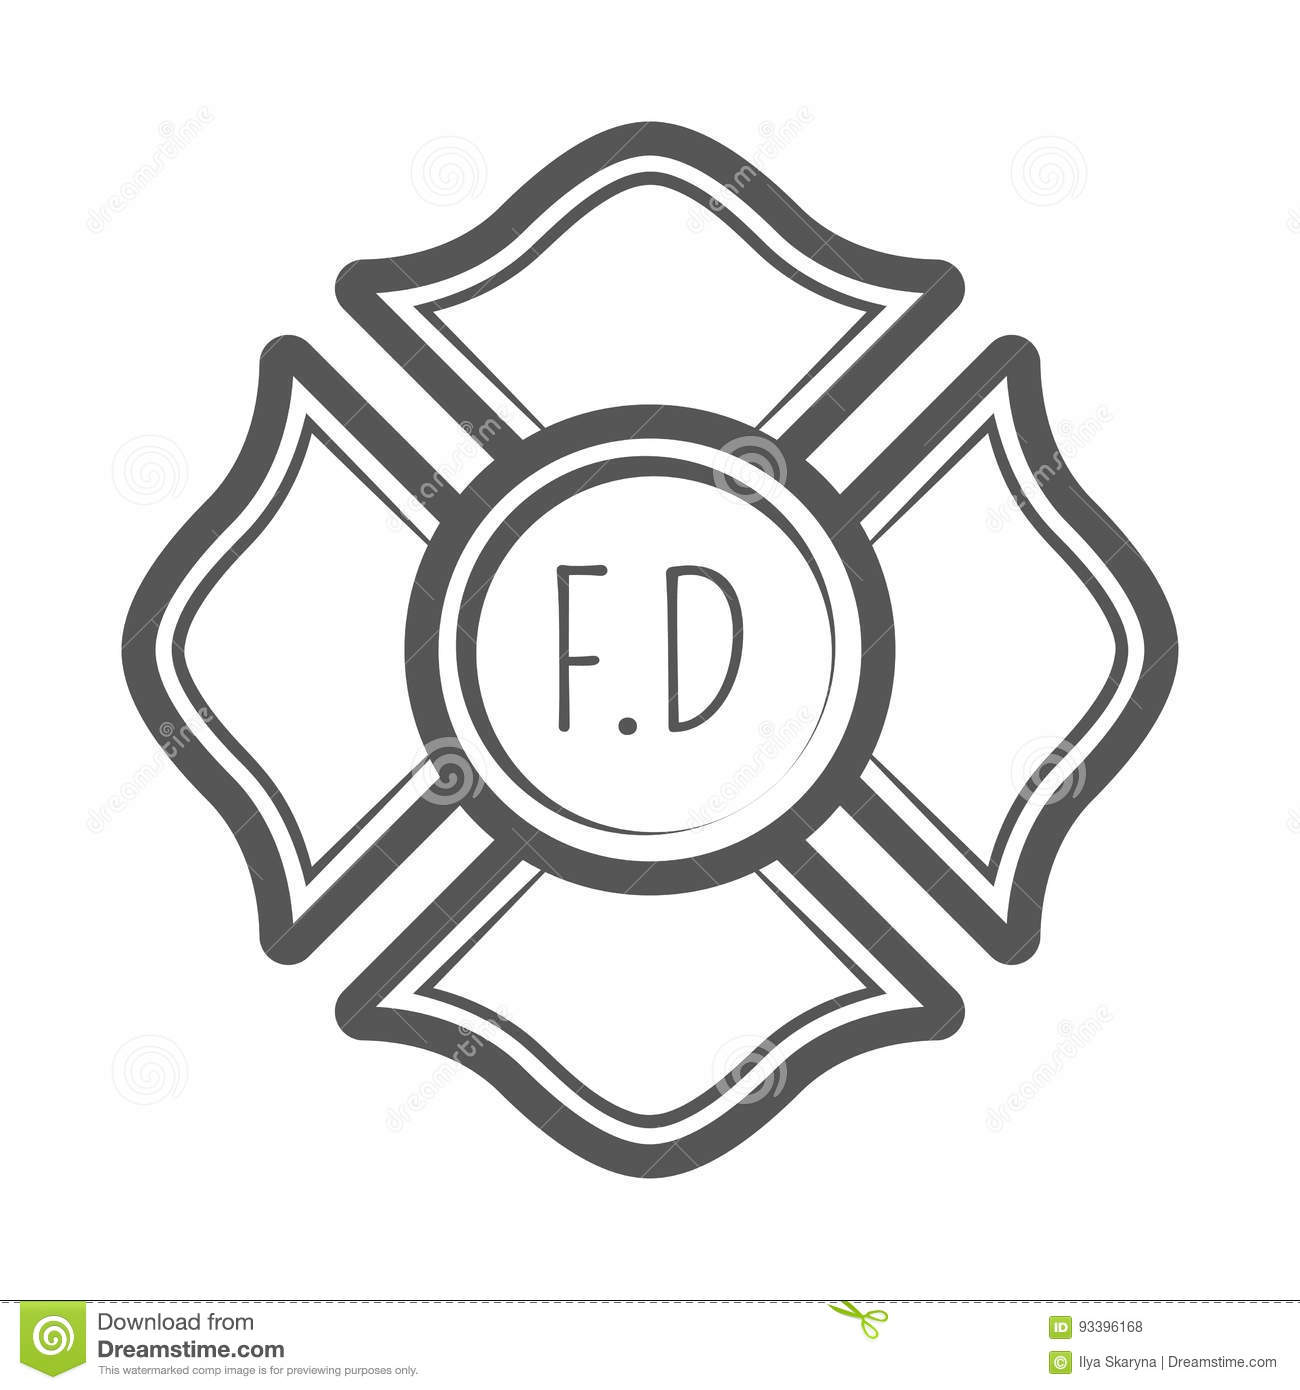 Cross Firefighter Vector Illustration In Monocrome Vintage